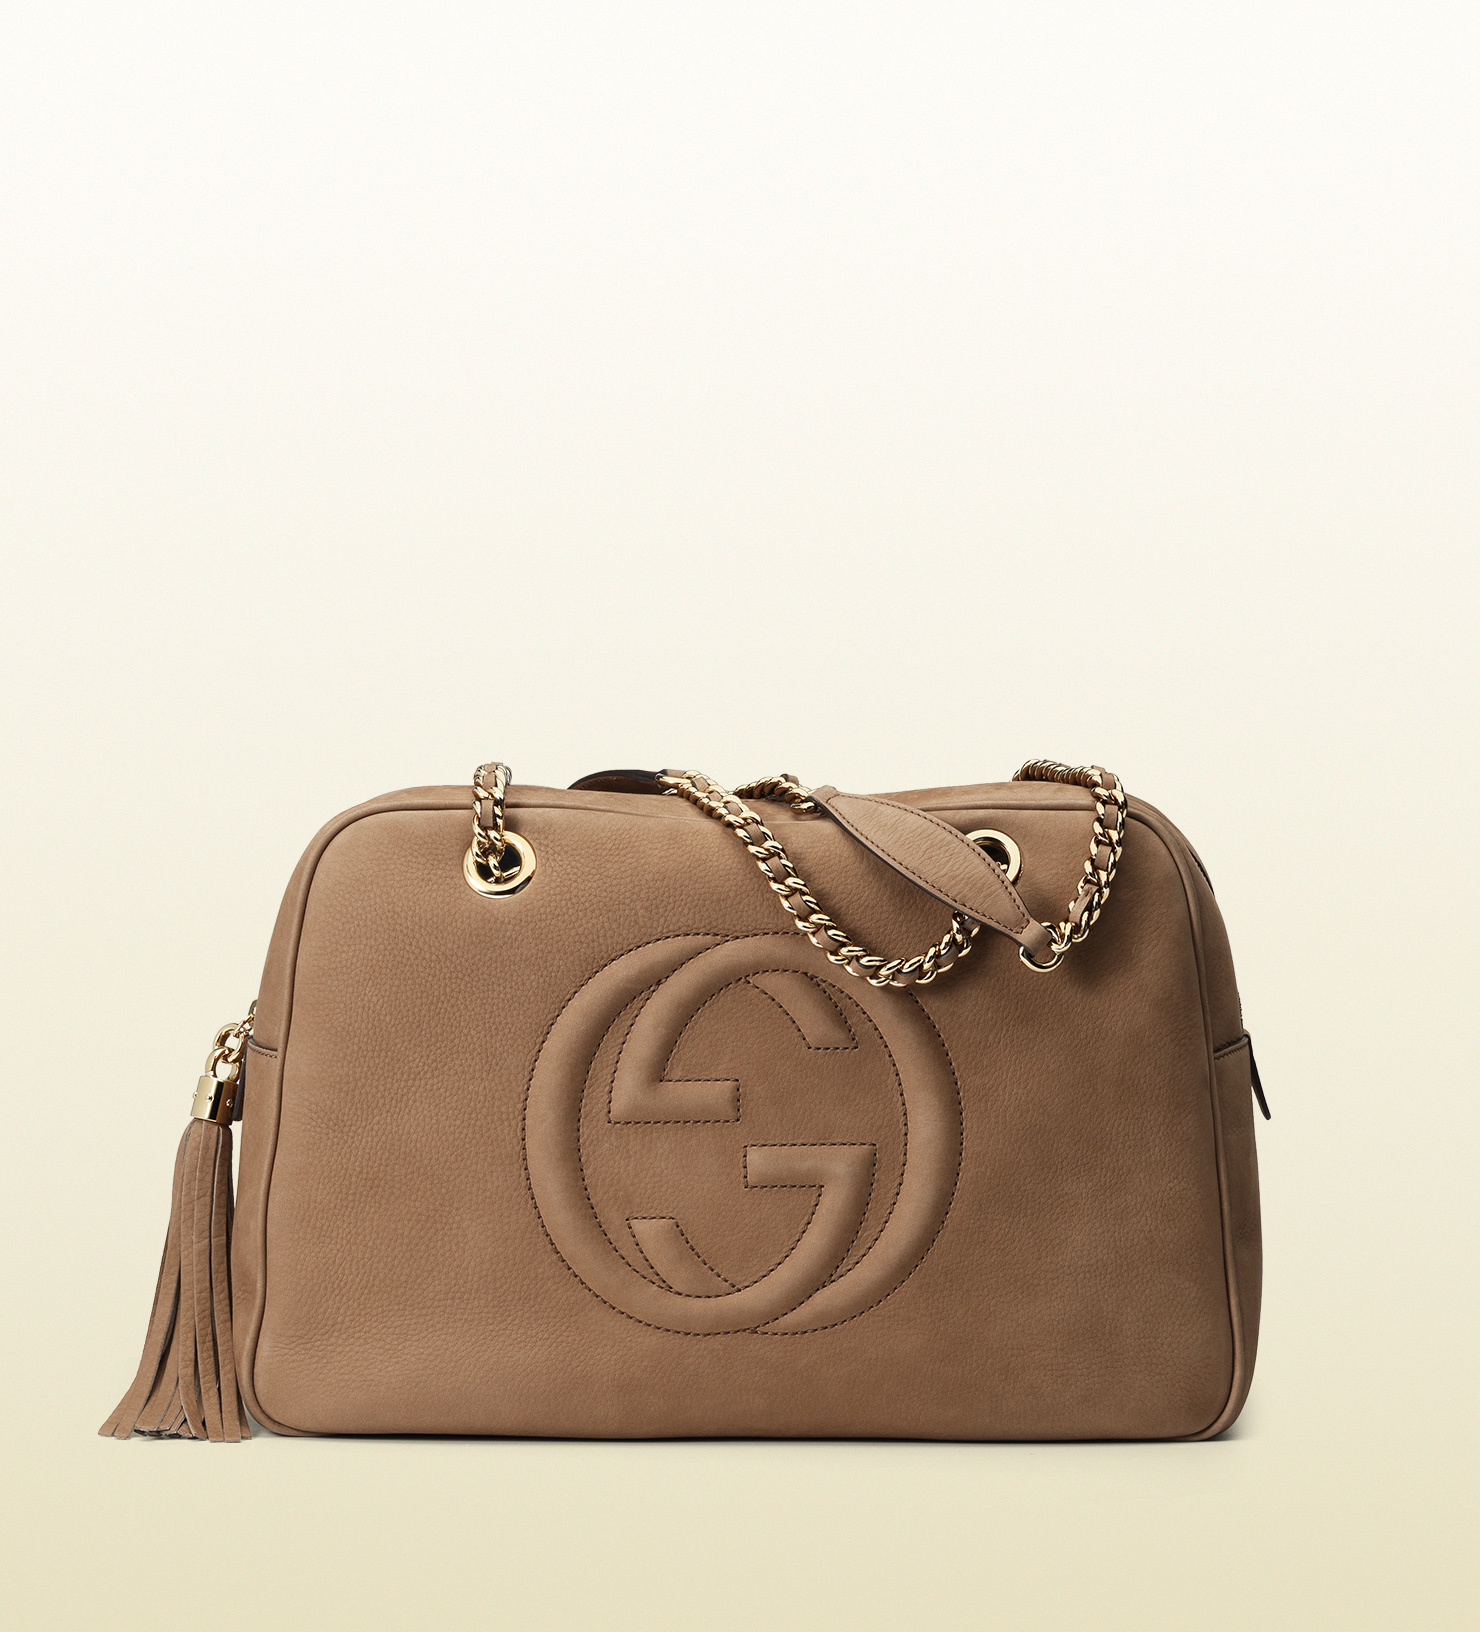 e606f8ebe452 Lyst - Gucci Soho Nubuck Leather Chain Shoulder Bag in Brown